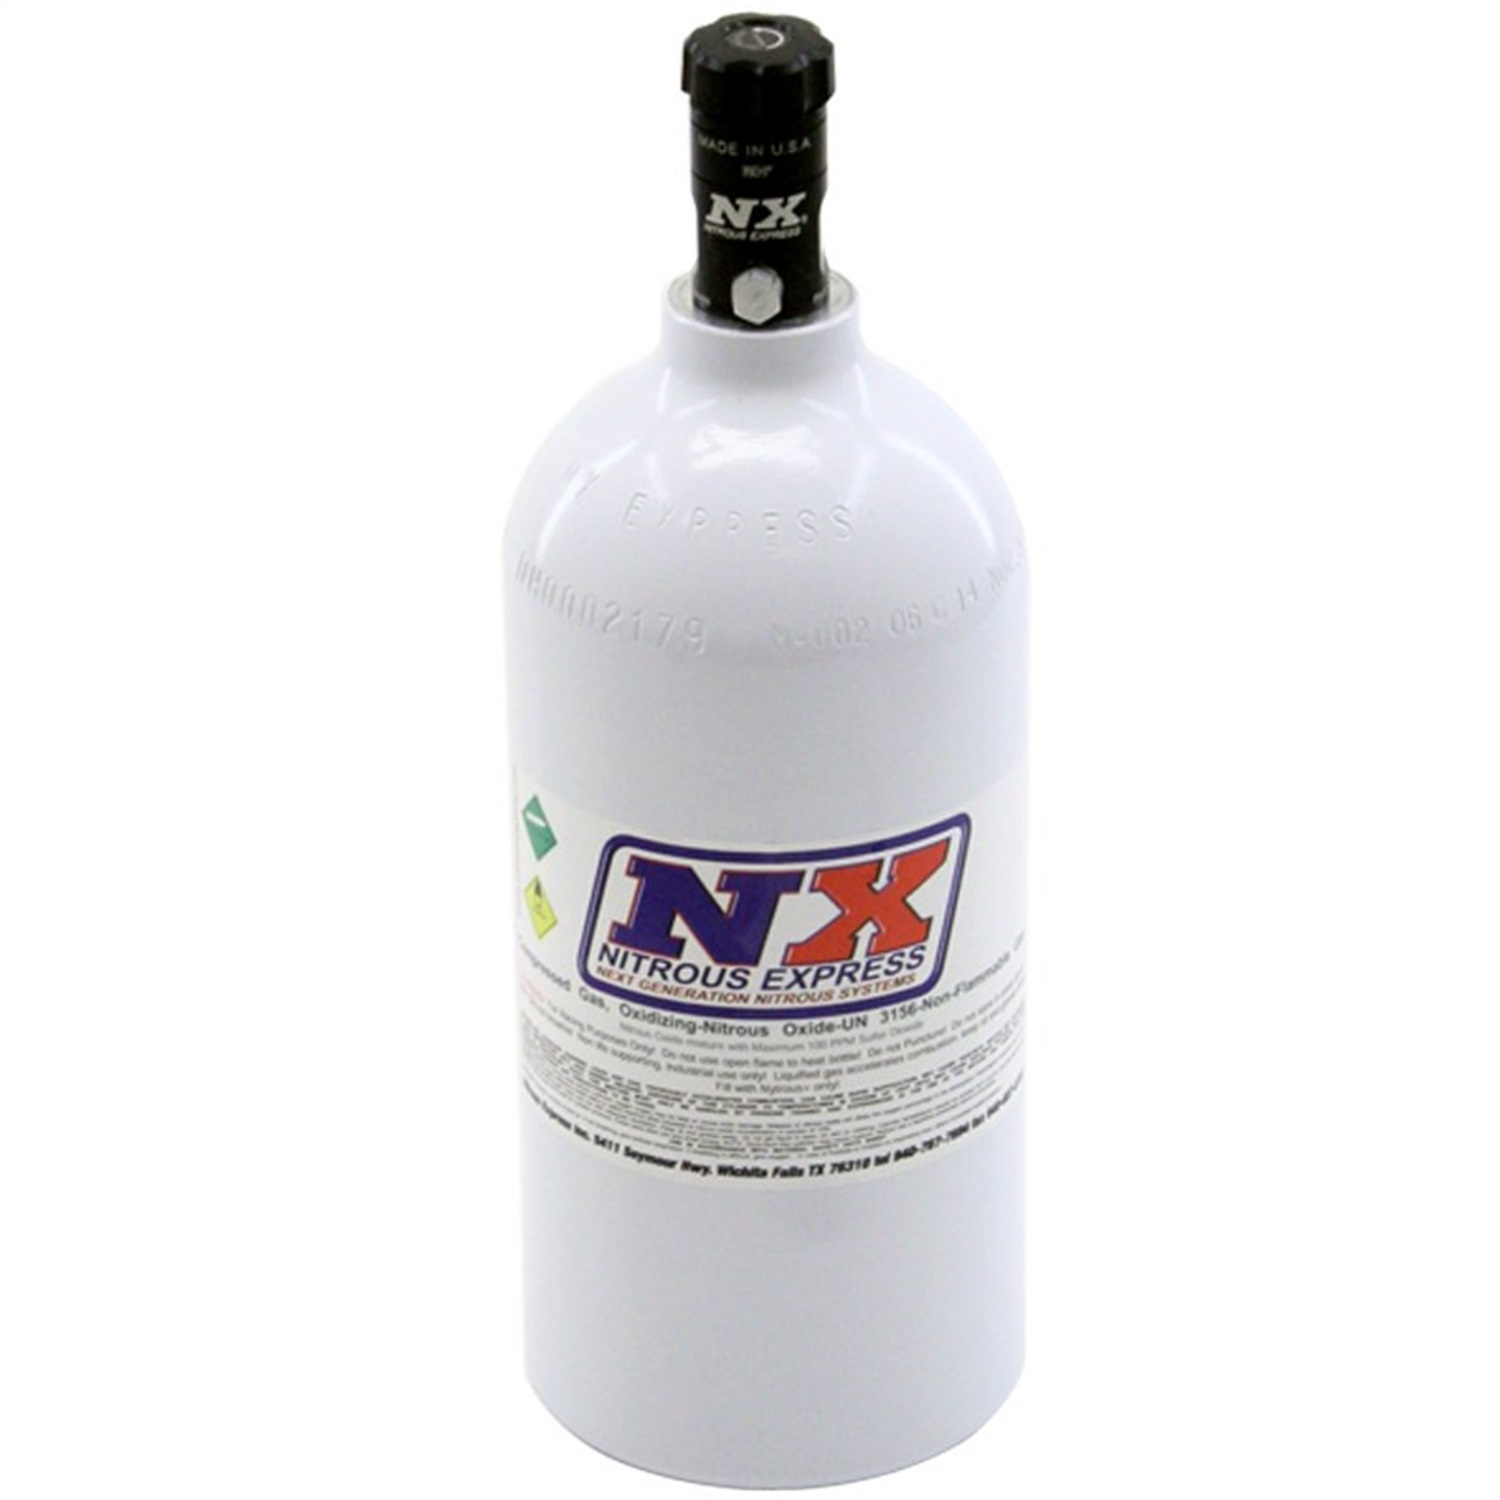 Nitrous Express 11025 Nitrous Bottle